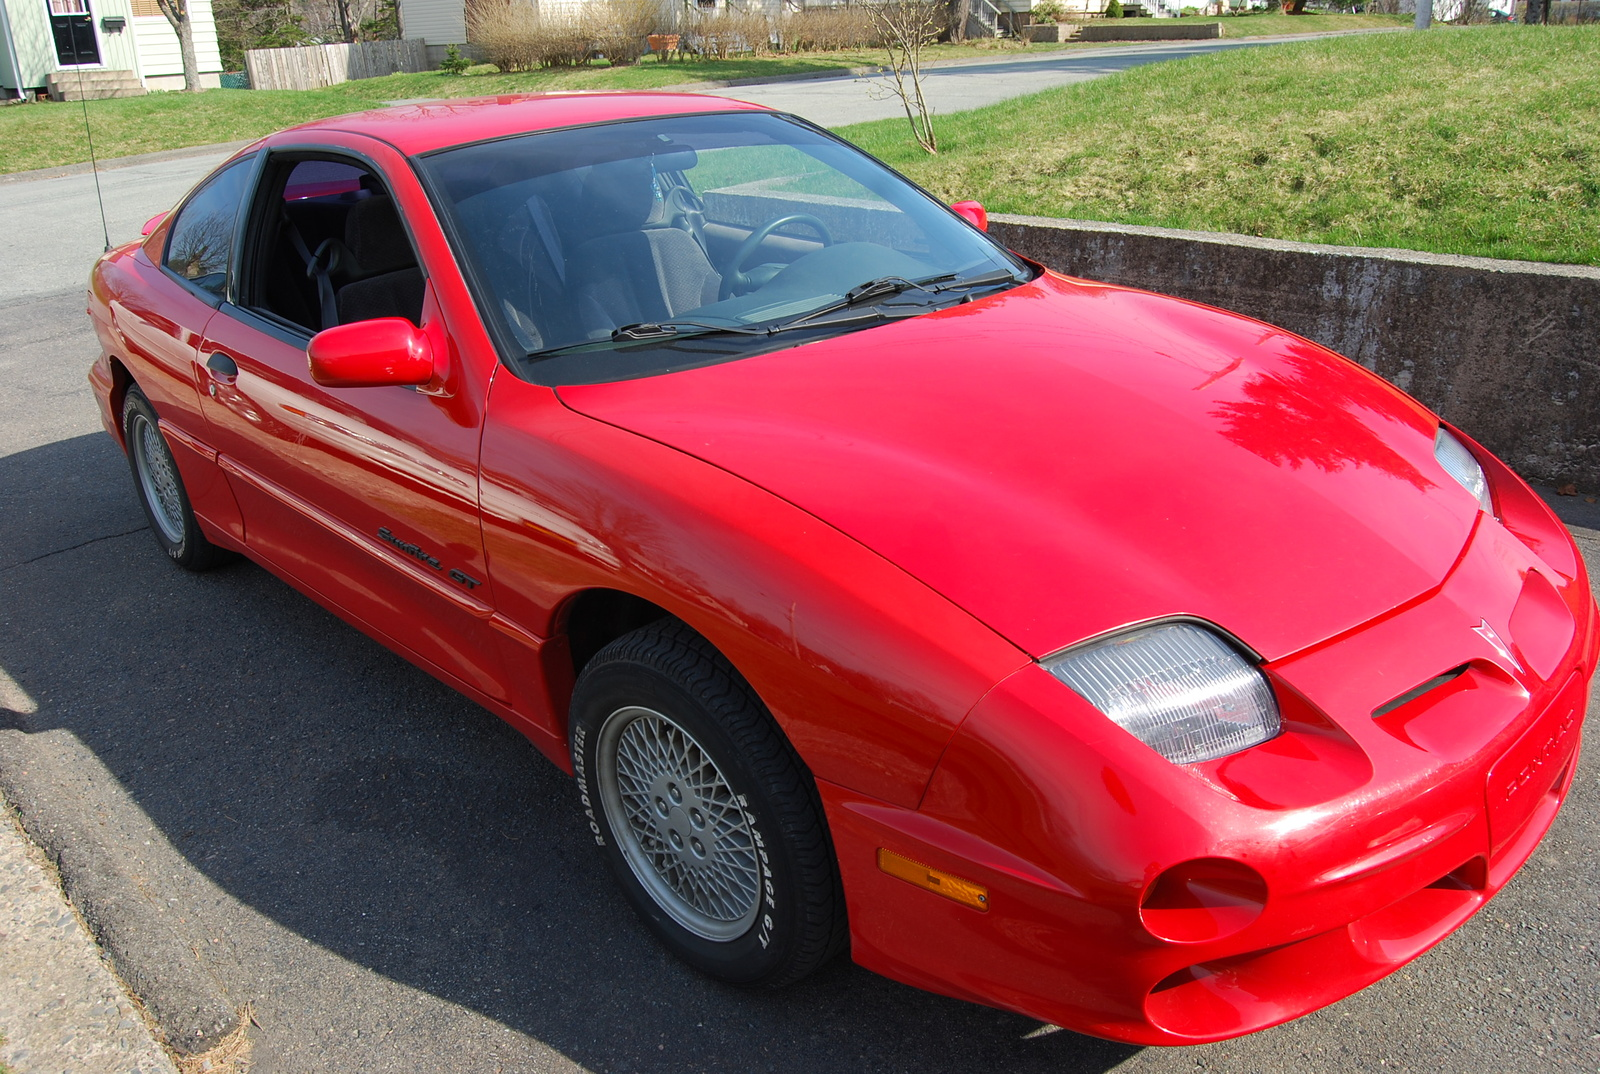 2000 Pontiac Sunfire GT Coupe picture